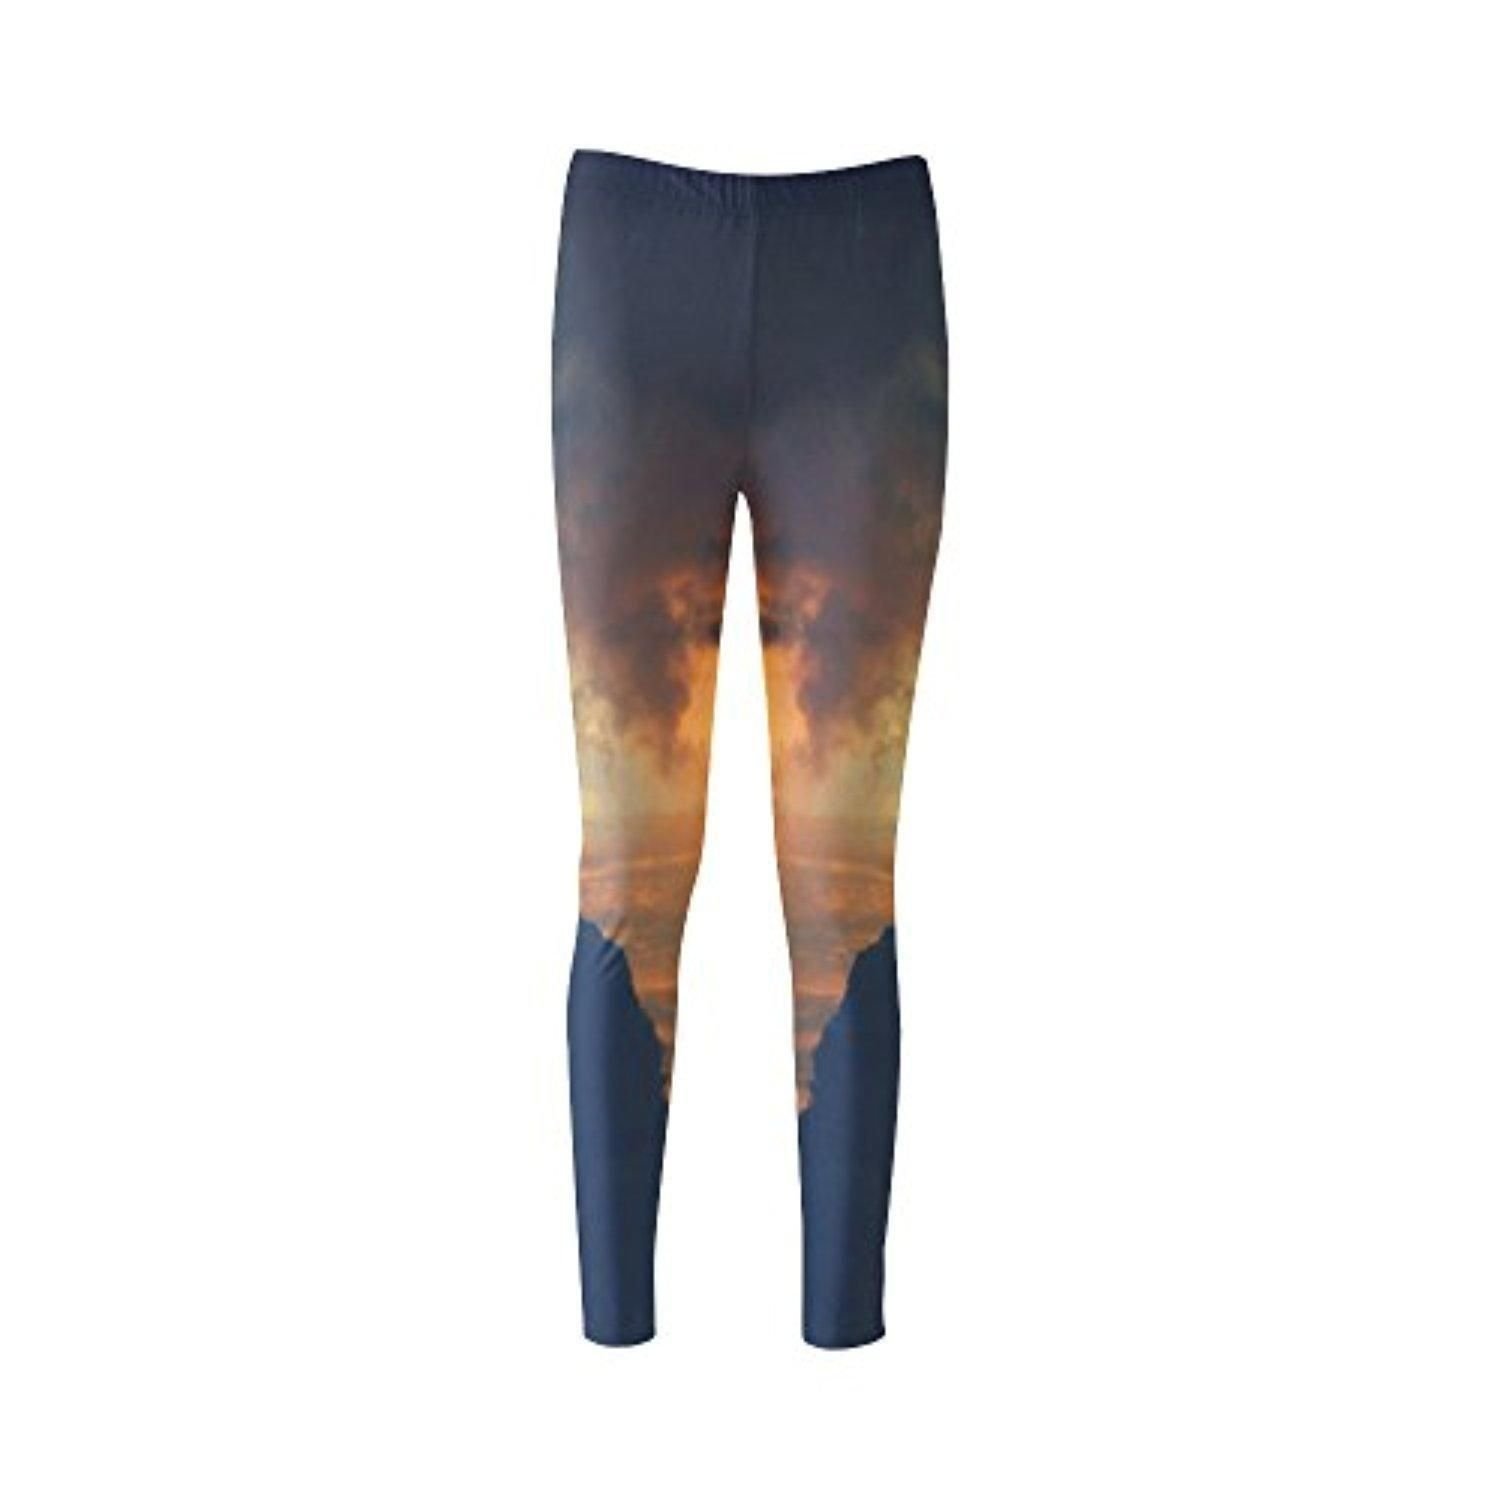 Custom Clouds Women's Leggings Polyamide Material - Brought to you by Avarsha.com